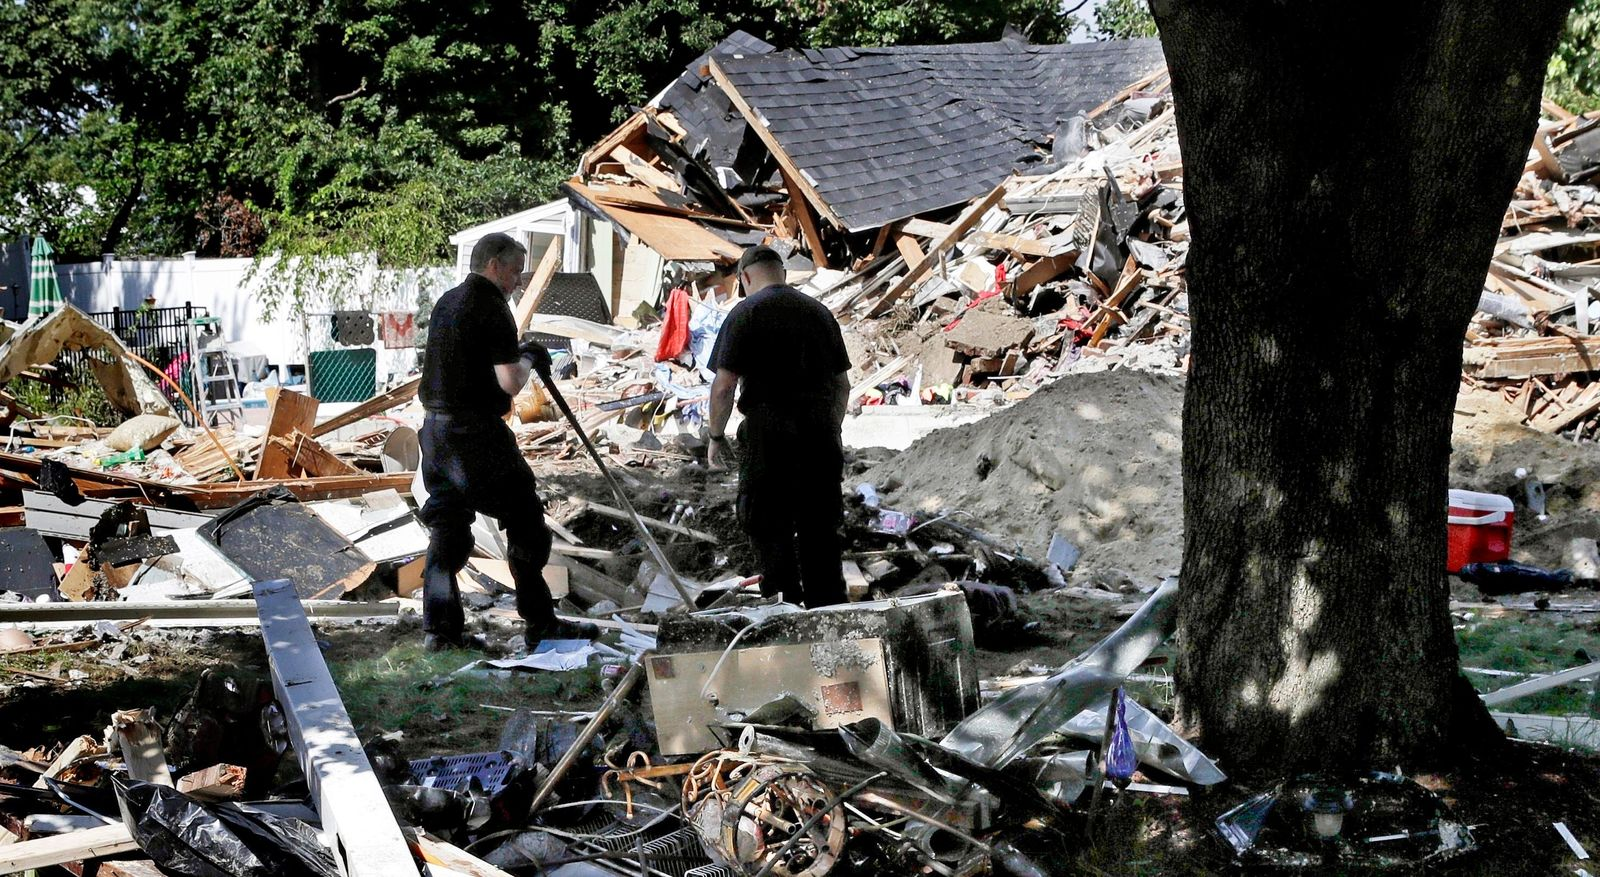 FILE - In this Sep. 21, 2018, file photo, fire investigators pause while searching the debris at a home which exploded following a gas line failure in Lawrence, Mass. (AP Photo/Charles Krupa, File)